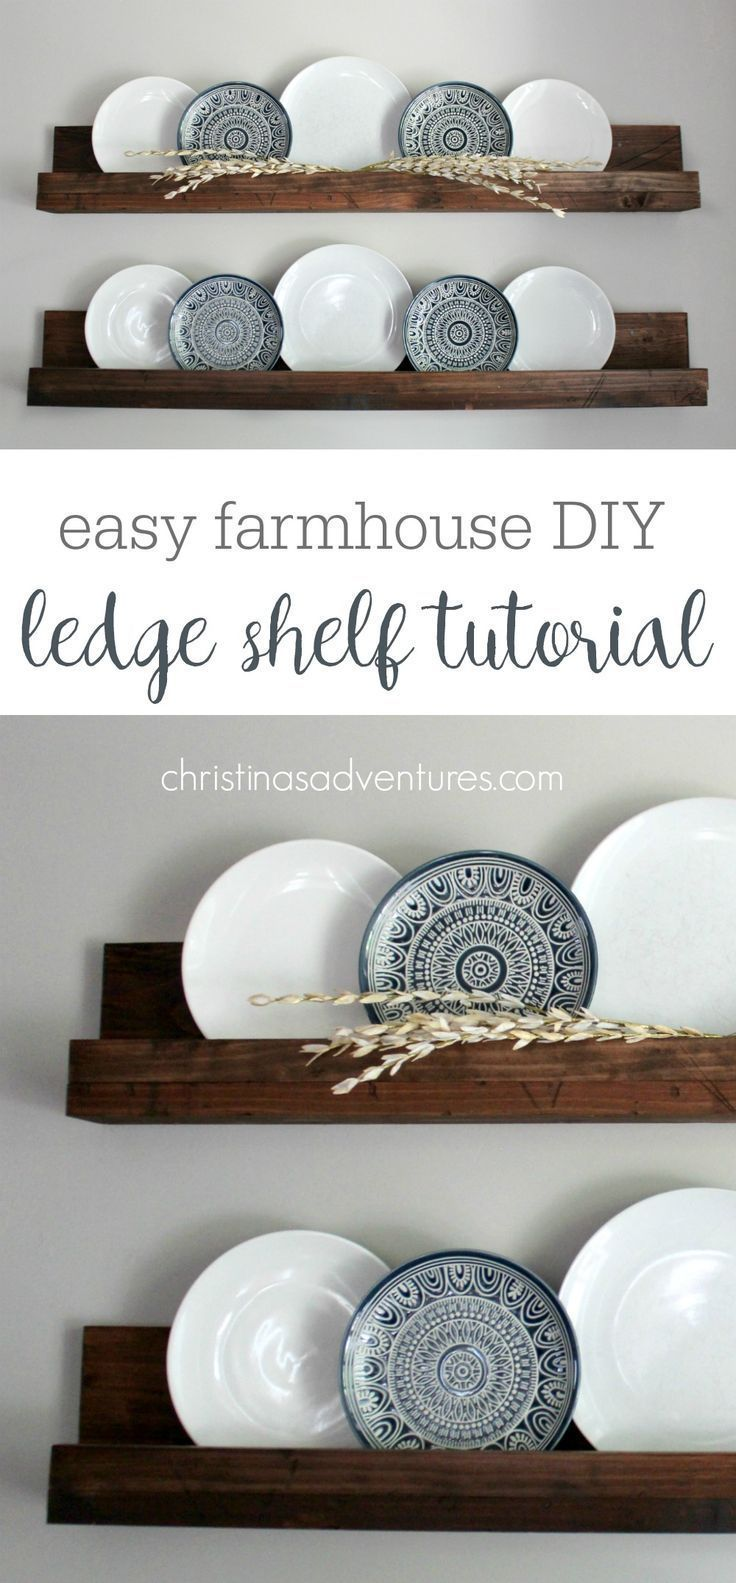 These farmhouse style shelves will take about